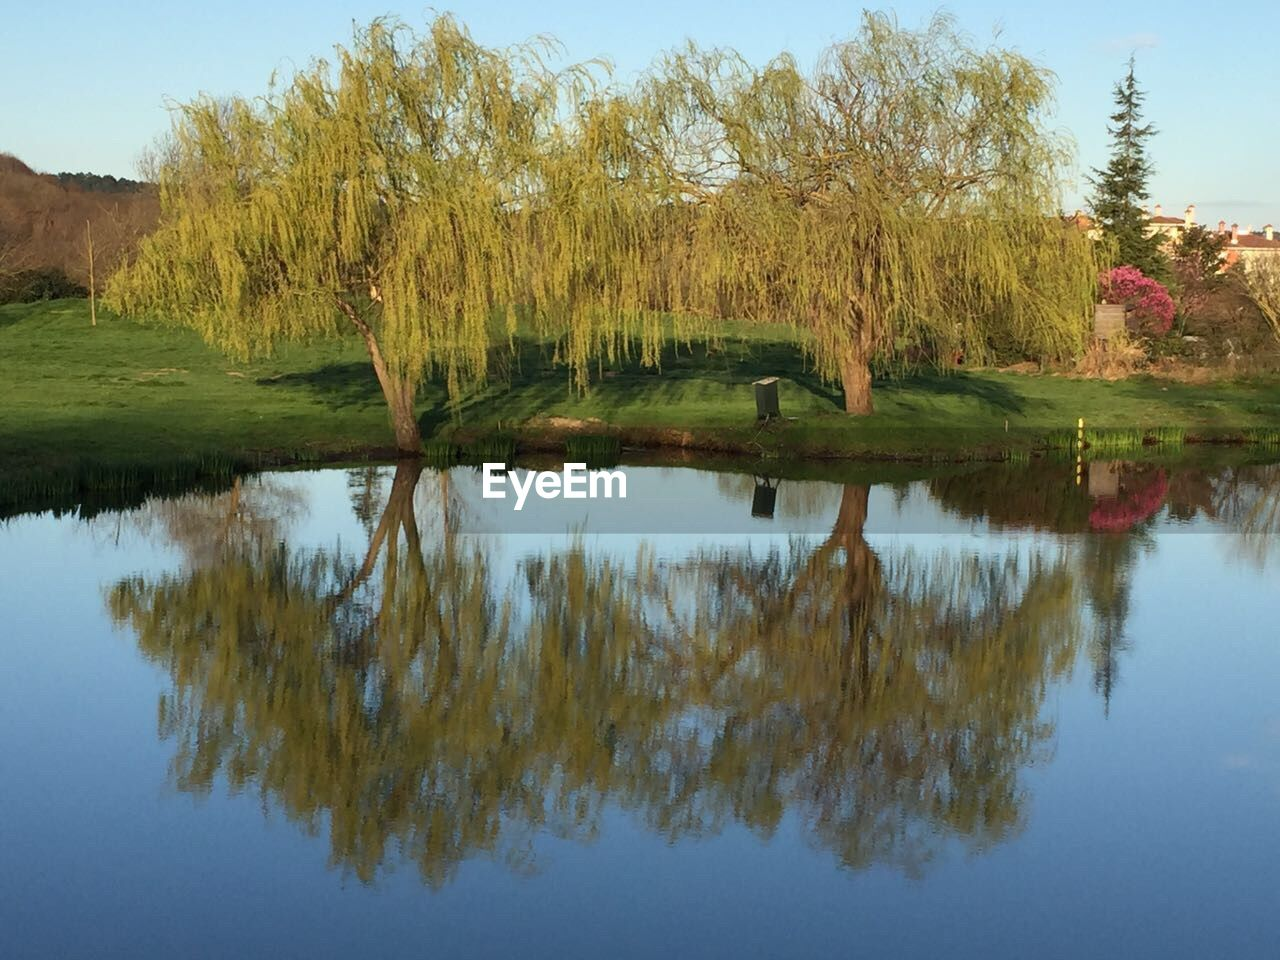 reflection, tree, water, lake, tranquil scene, nature, tranquility, beauty in nature, scenics, waterfront, outdoors, no people, day, growth, sky, grass, animal themes, bird